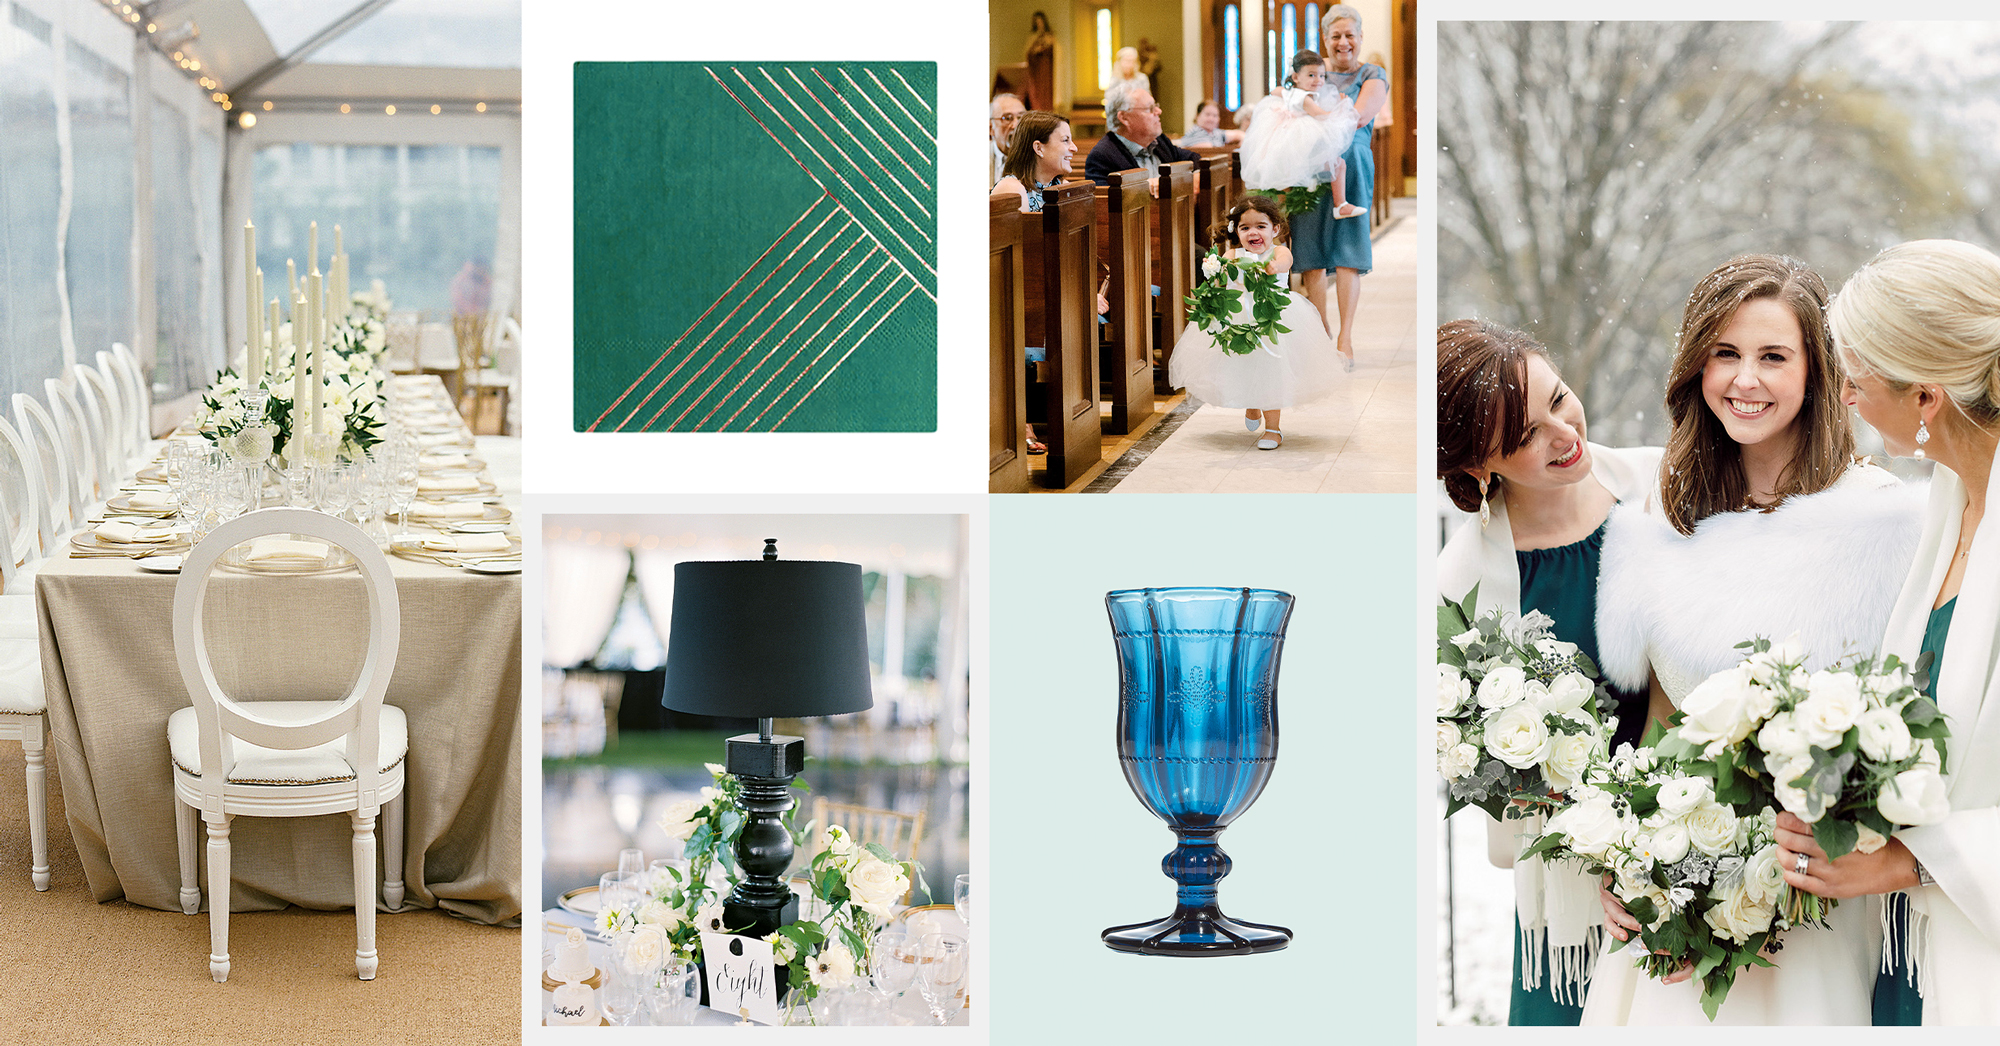 Winter Weddings, Emerald Green, and Flower Girl Posies: Check Out These Nine Weddings Trends We're Loving Right Now